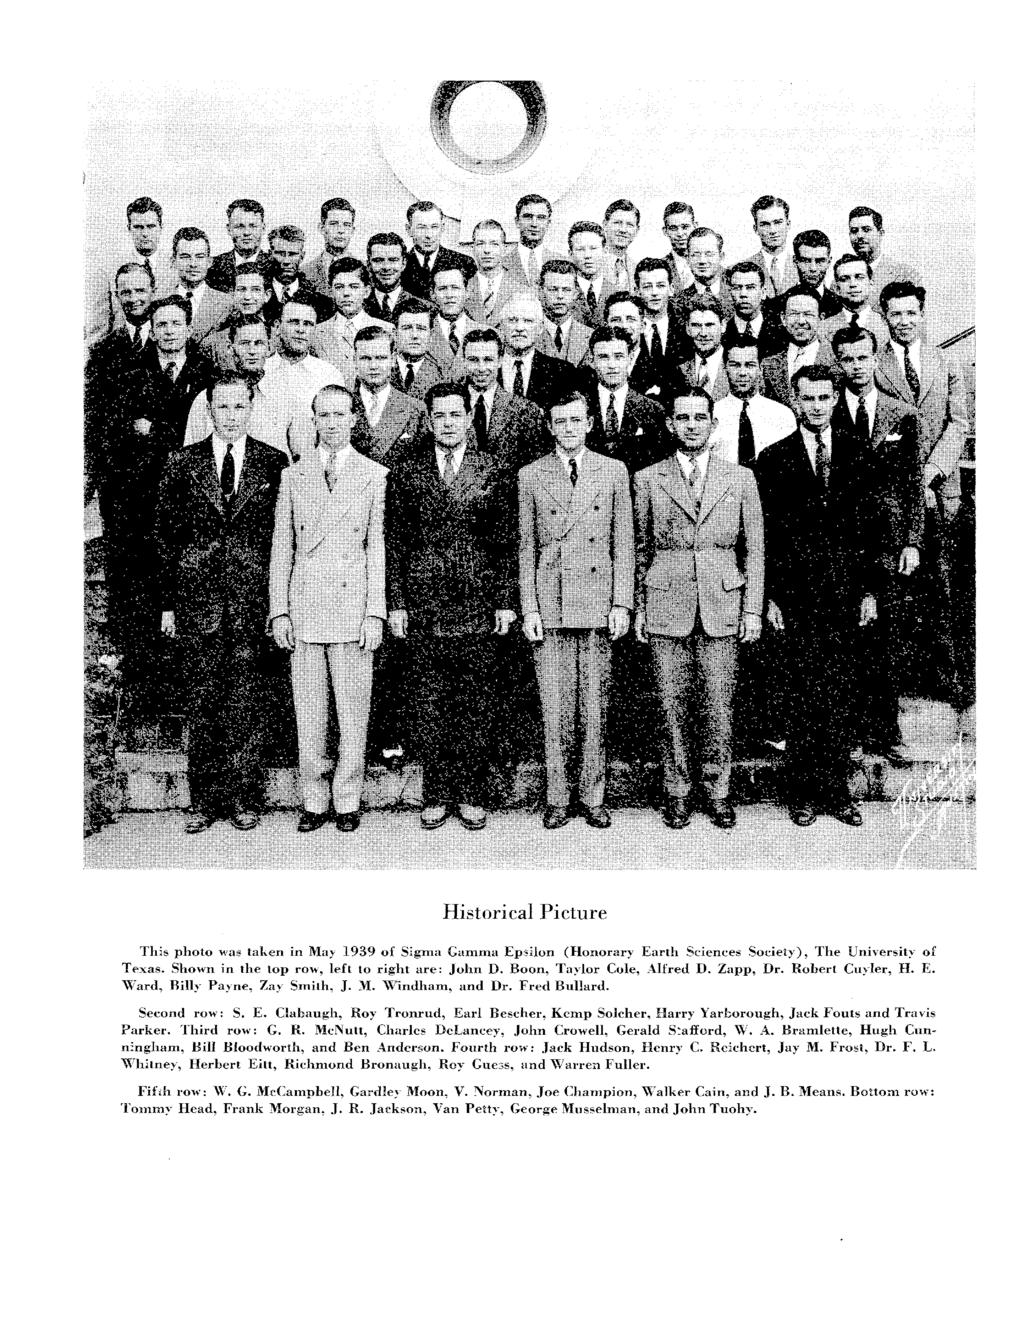 HistoricalPicture This photo was taken in May 1939 of Sigma GammaEpsilon (Honorary Earth Sciences Society), The University of Texas. Shownin the top row,left to right are: JohnD.